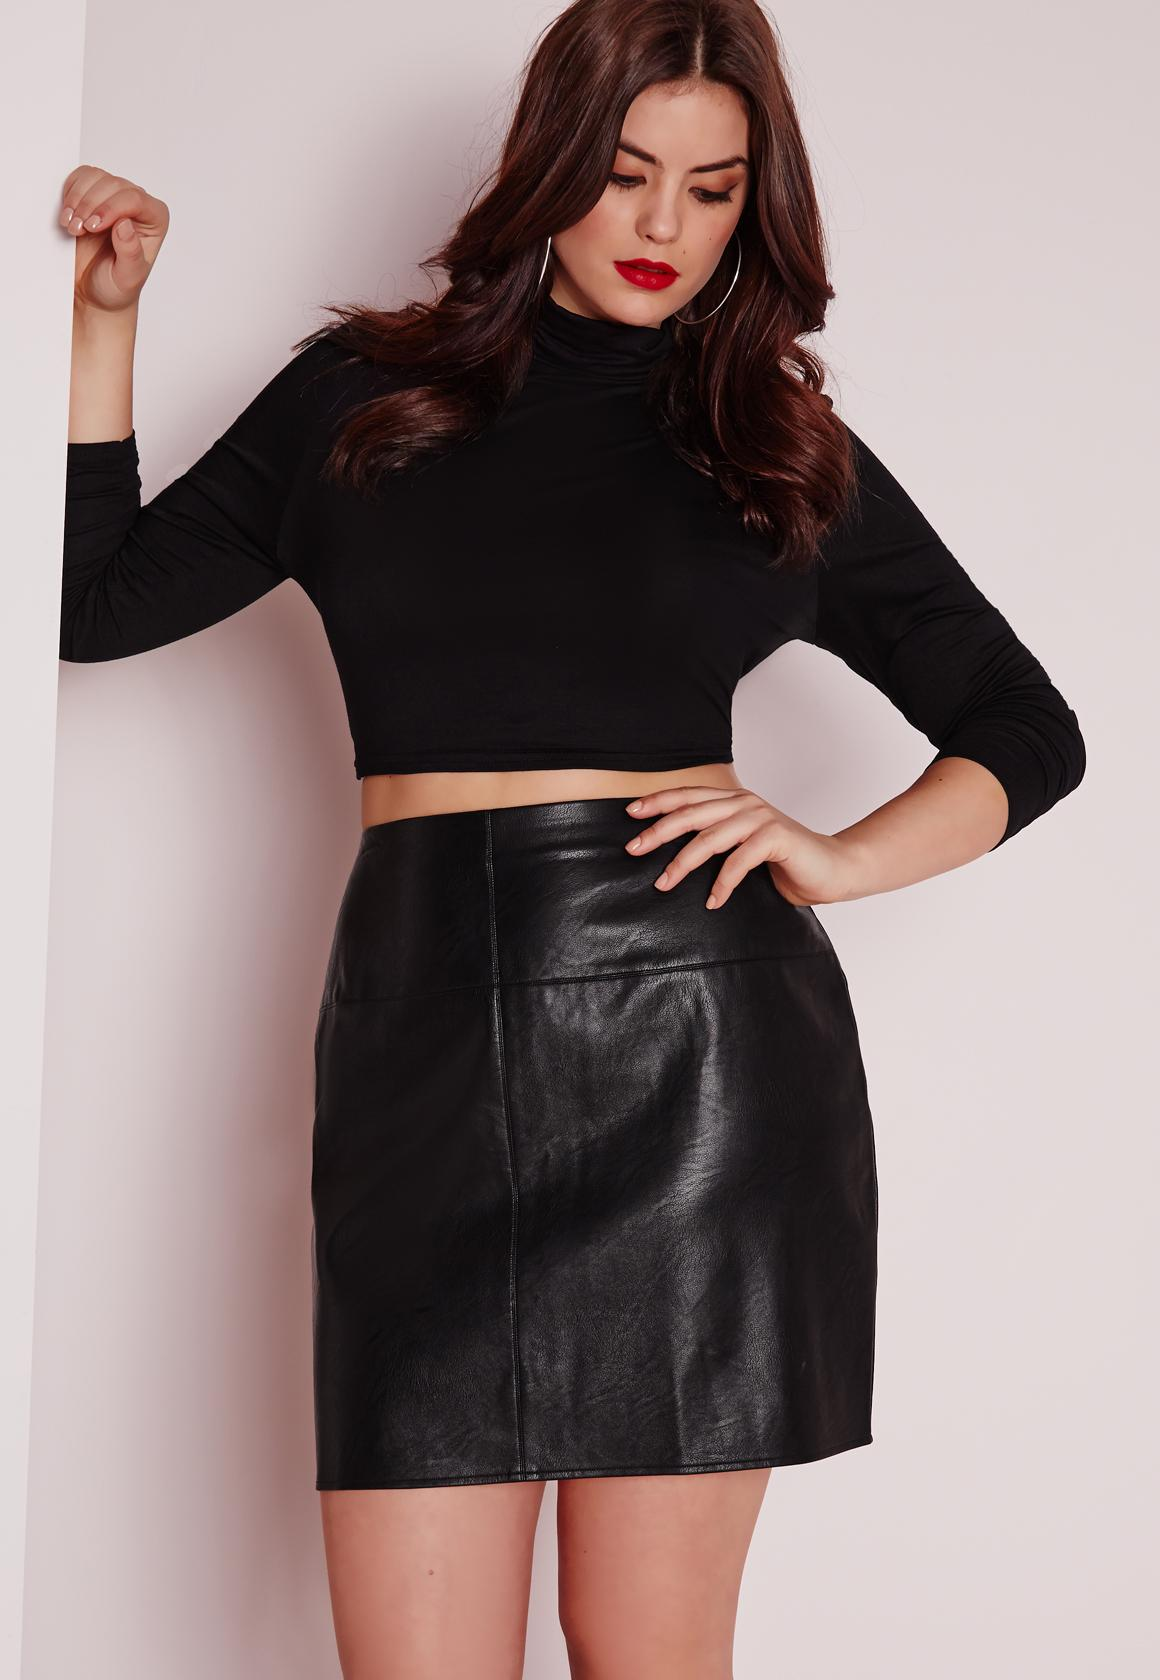 Plus Size Leather Skirt - Adult Archive-6678